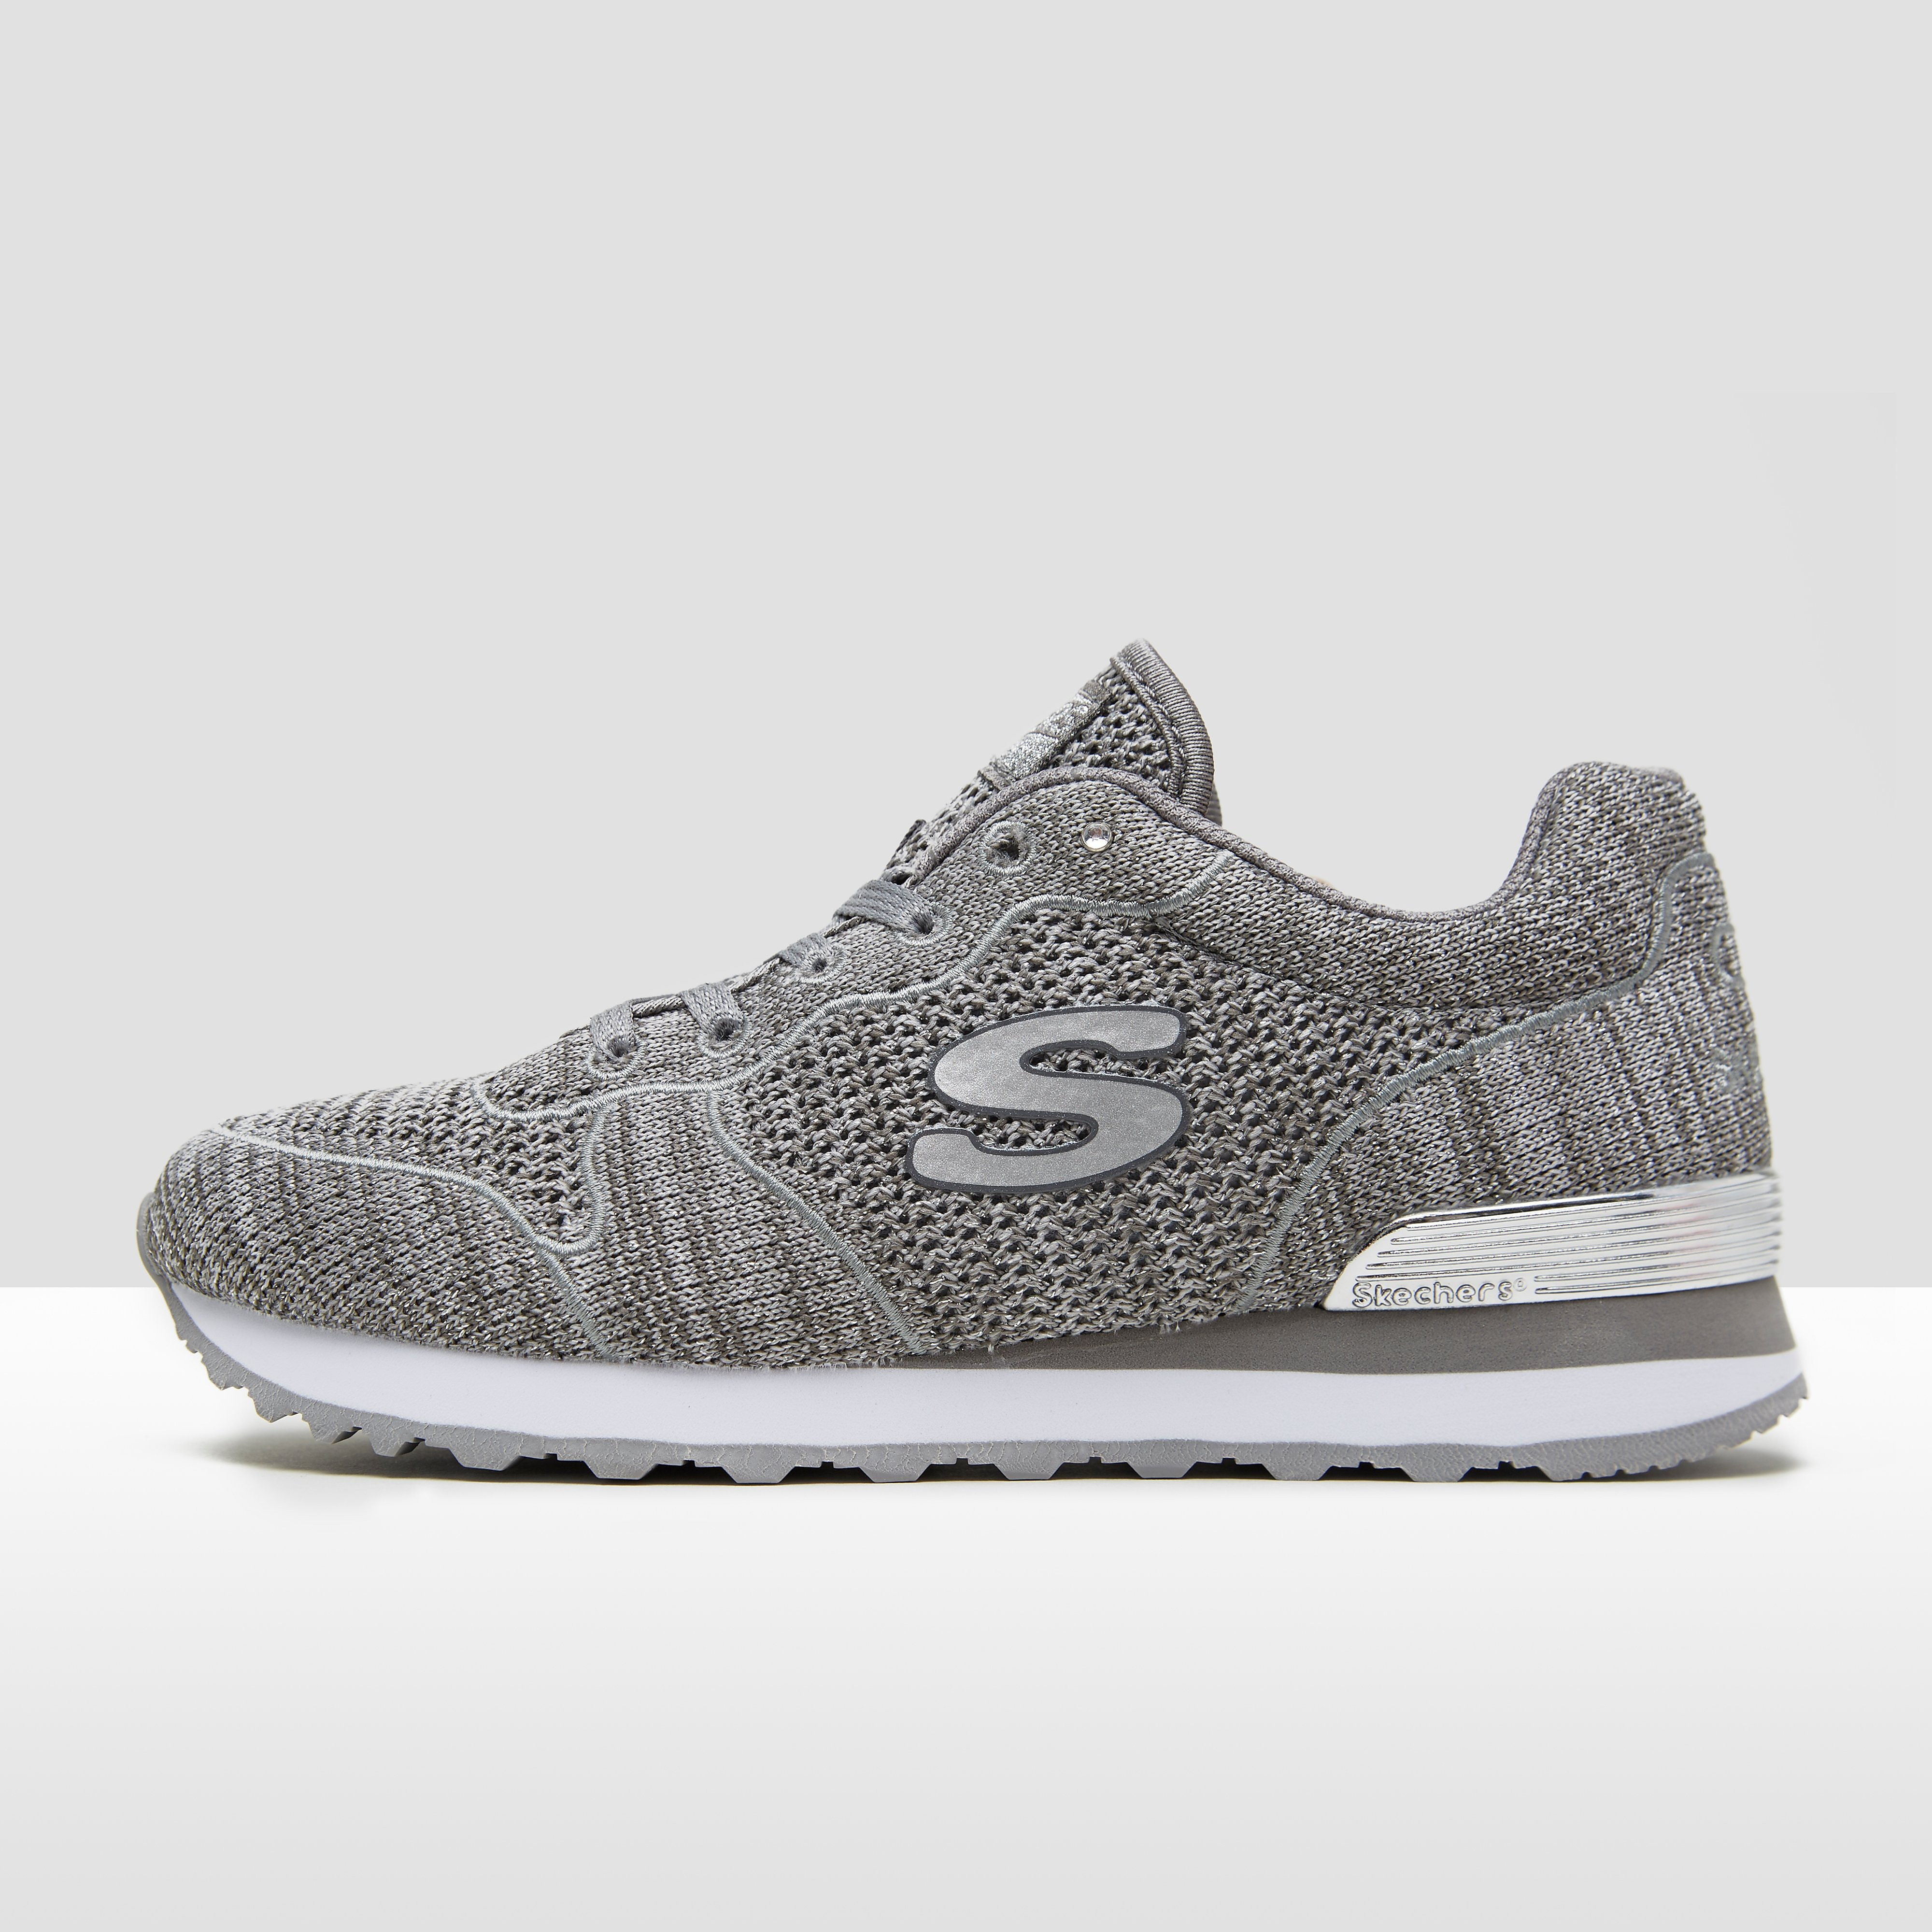 SKECHERS OG 85 LOW FLYERS ZILVER SNEAKERS